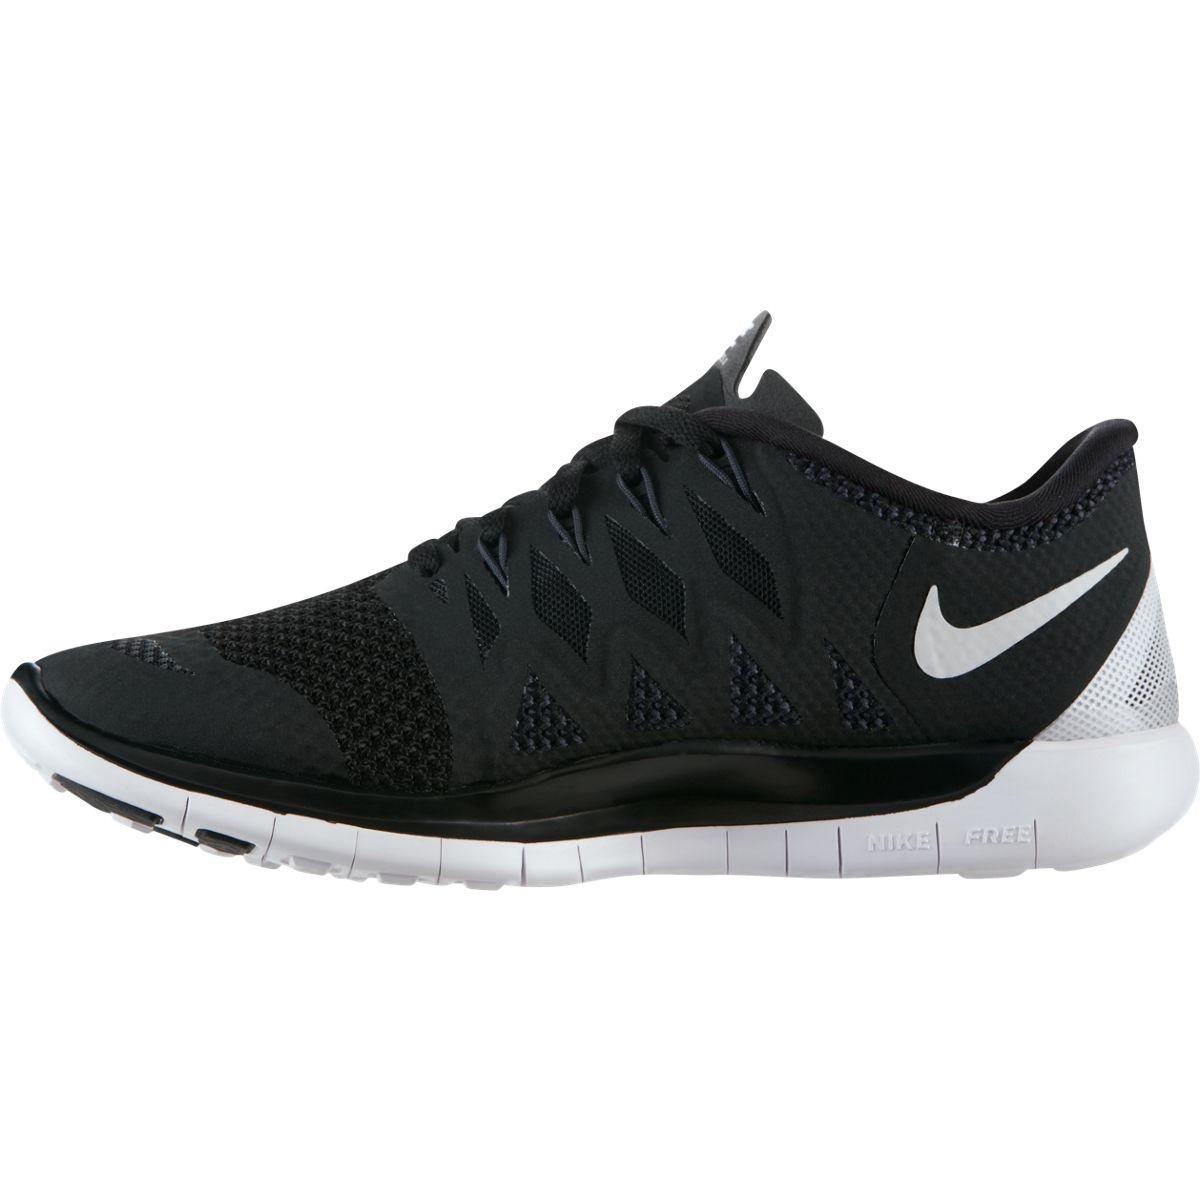 Beautiful Nike Lunarglide 3 Womens, Sports Authority, Lady Foot Locker, Eastbay, Zappos, Nike Lunarglide Womens, Finish Line, Nike Lunarglide 2 Womens Running Shoe, The Nike LunarGlide 2 Plush Cushioning, Dyn